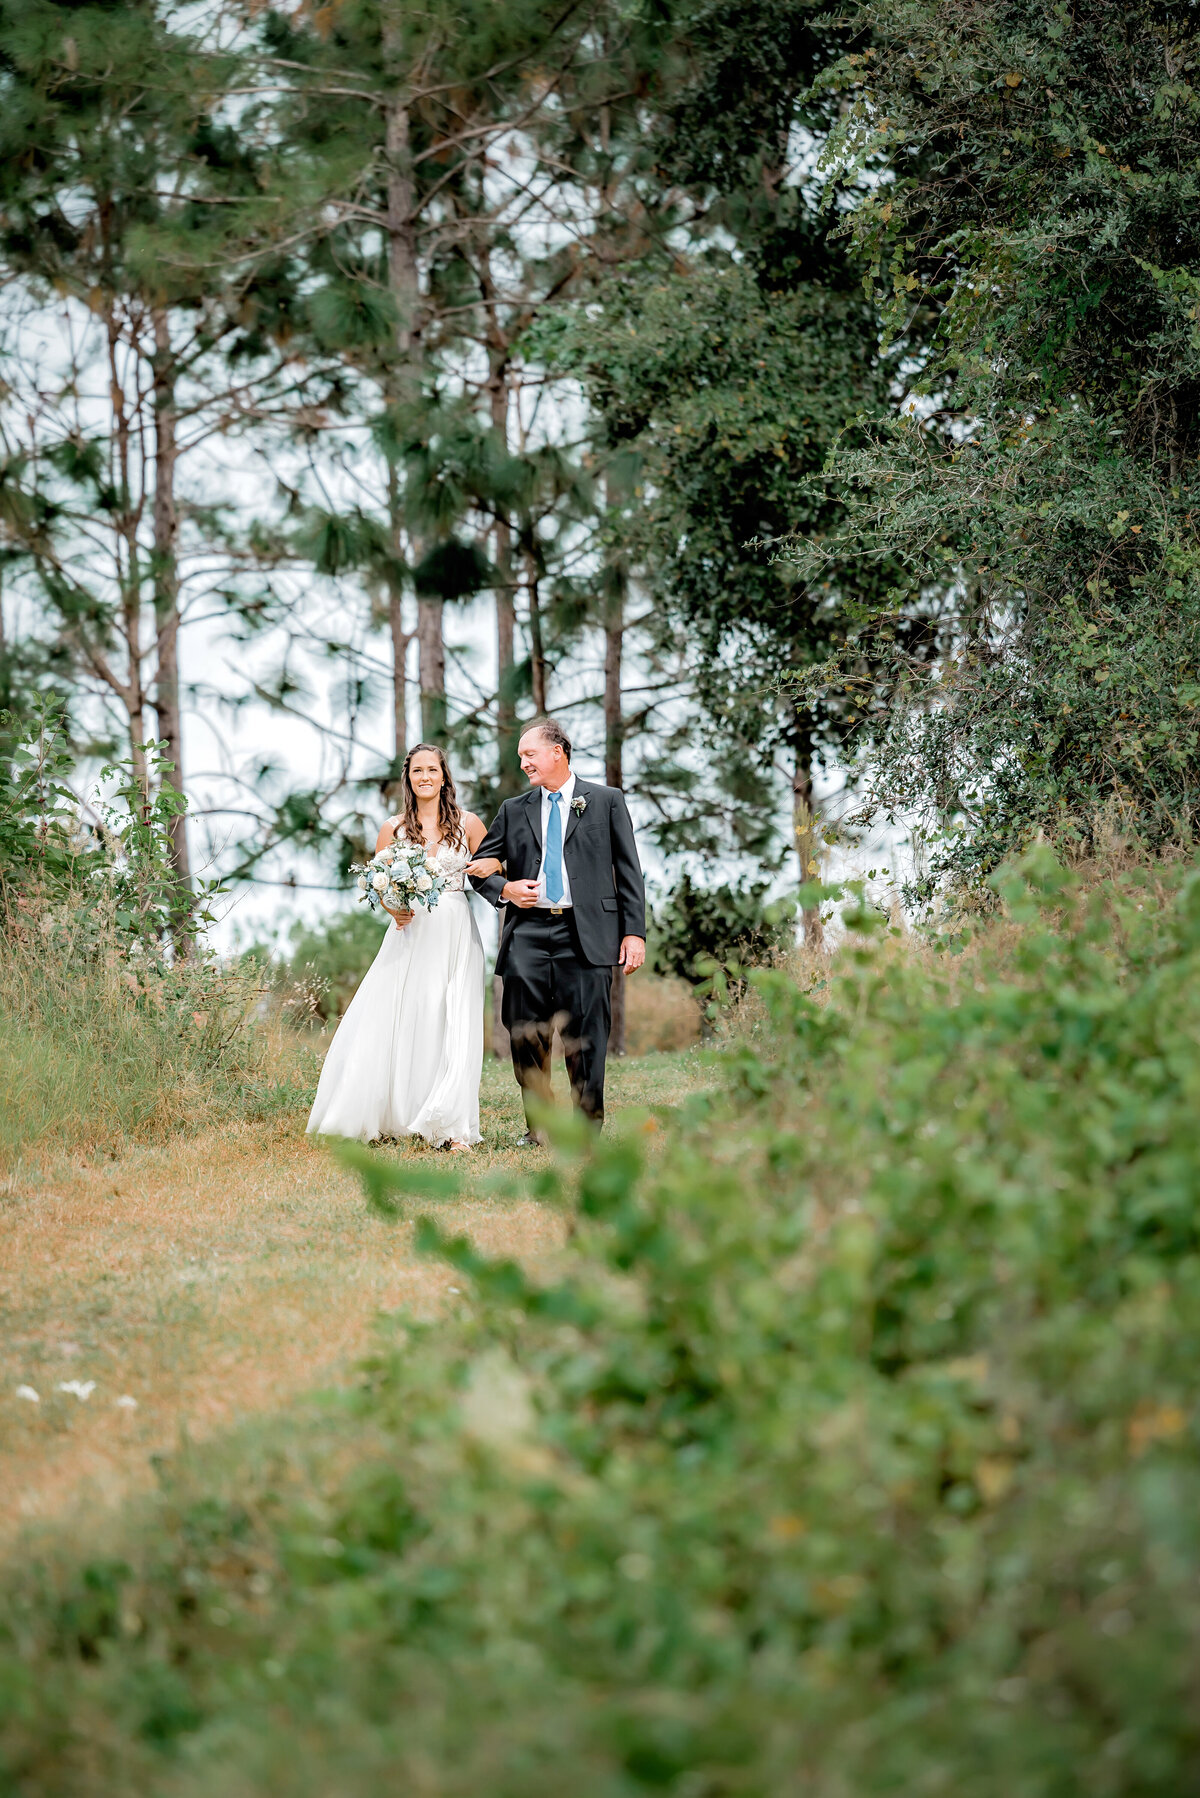 SH-Wedding-Photographerfavorite-26